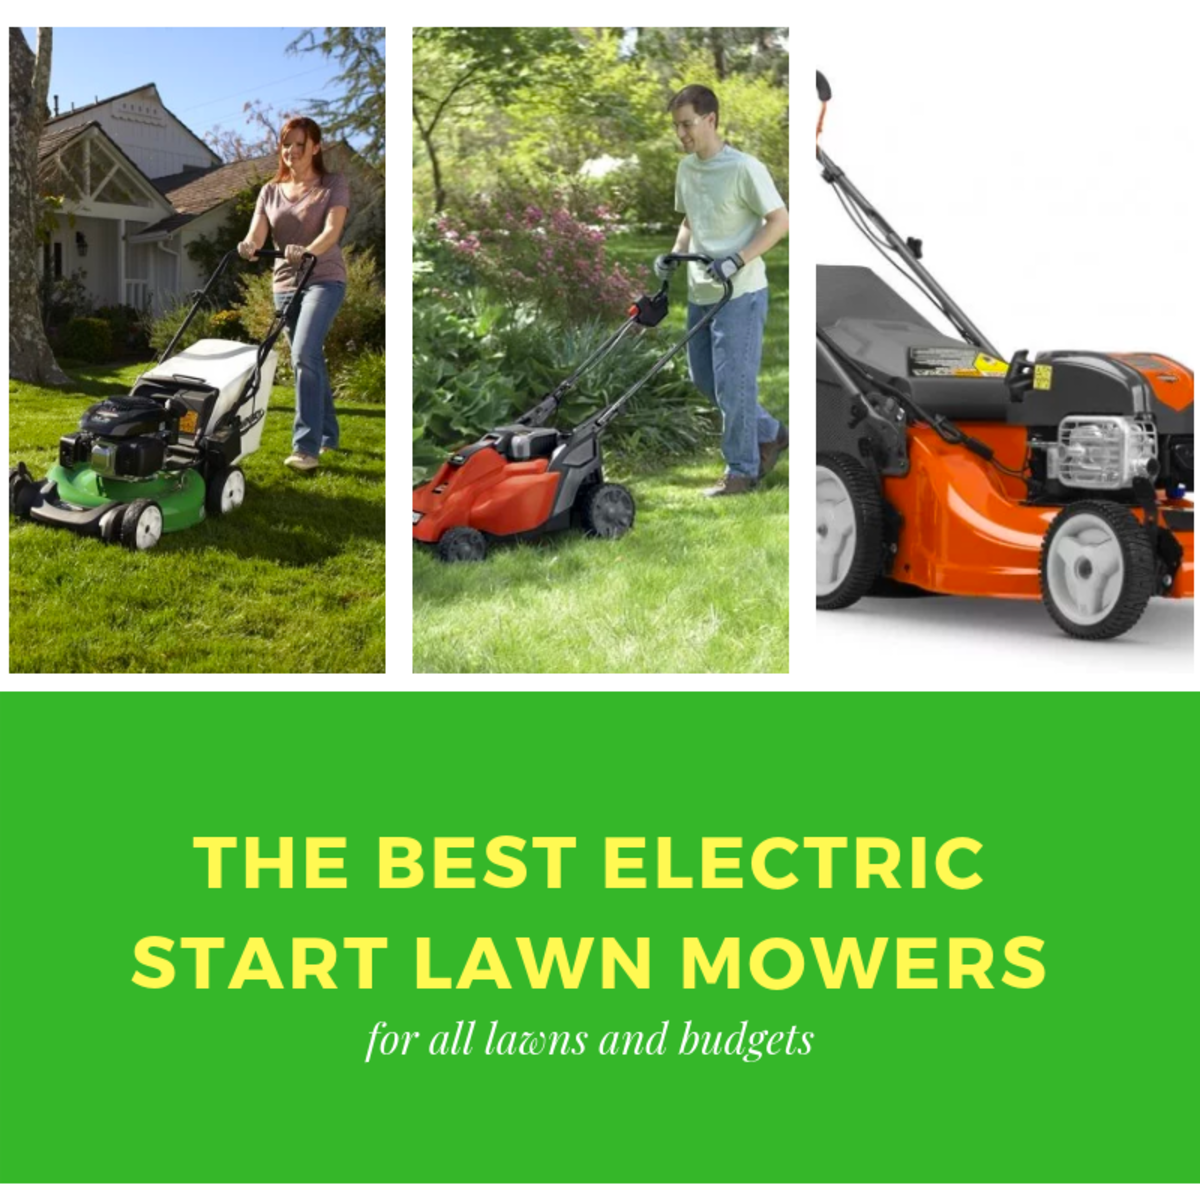 Top 3 Best Electric Start Lawn Mowers 2019